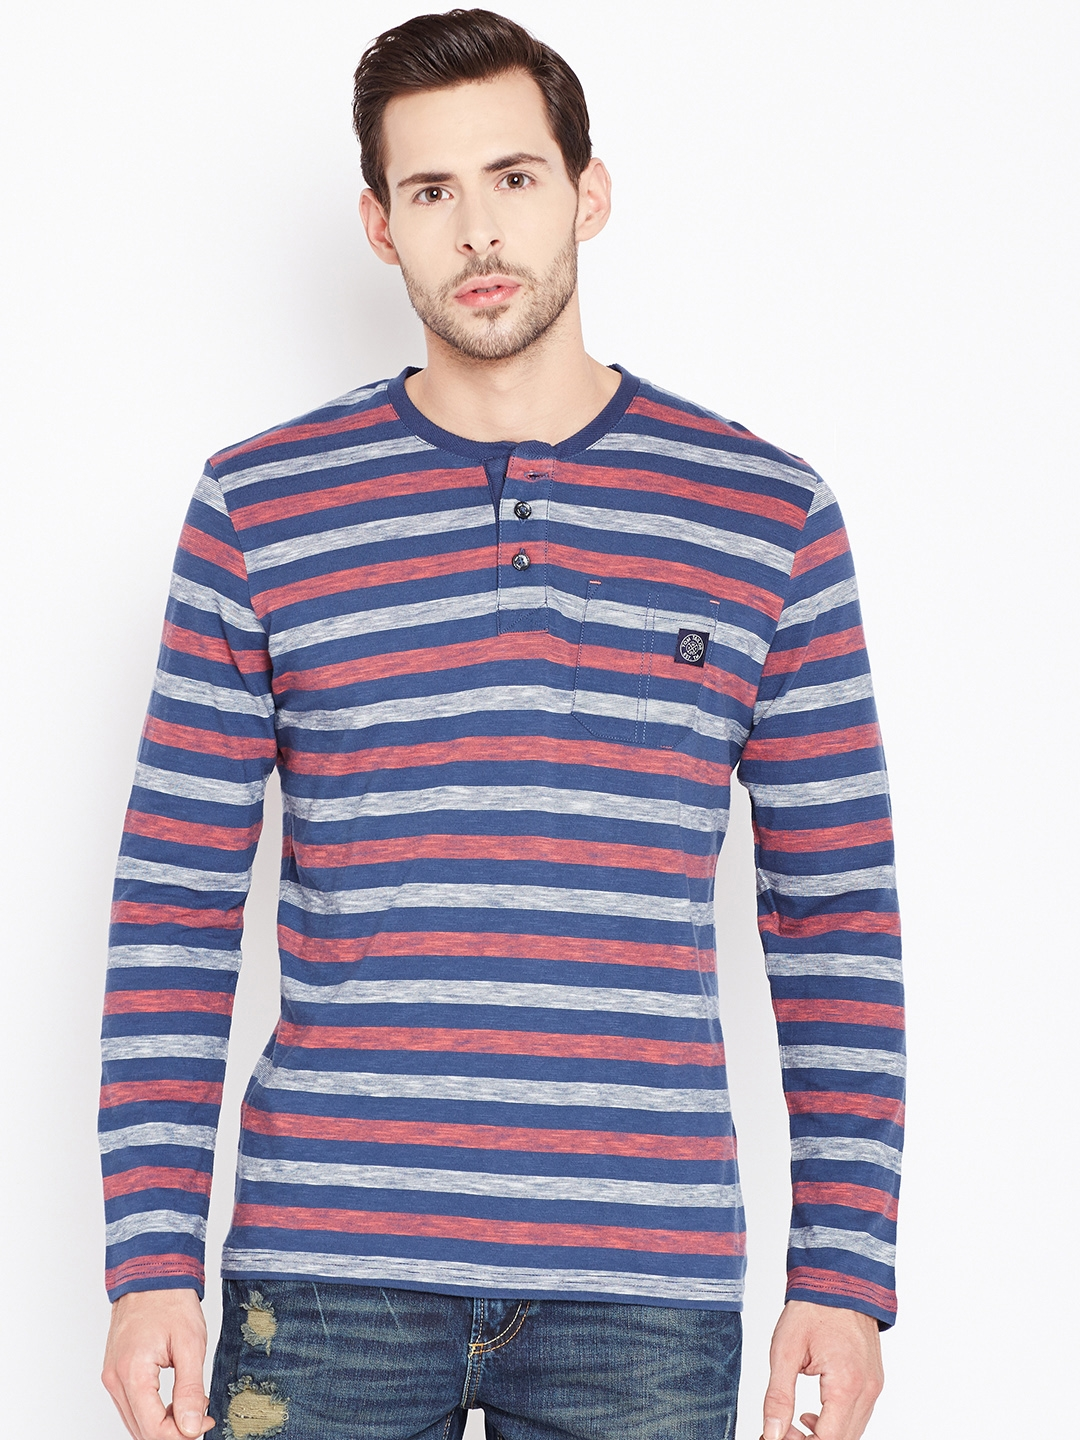 Tom Tailro Buy Tom Tailor Men Blue Off White Striped Round Neck T Shirt